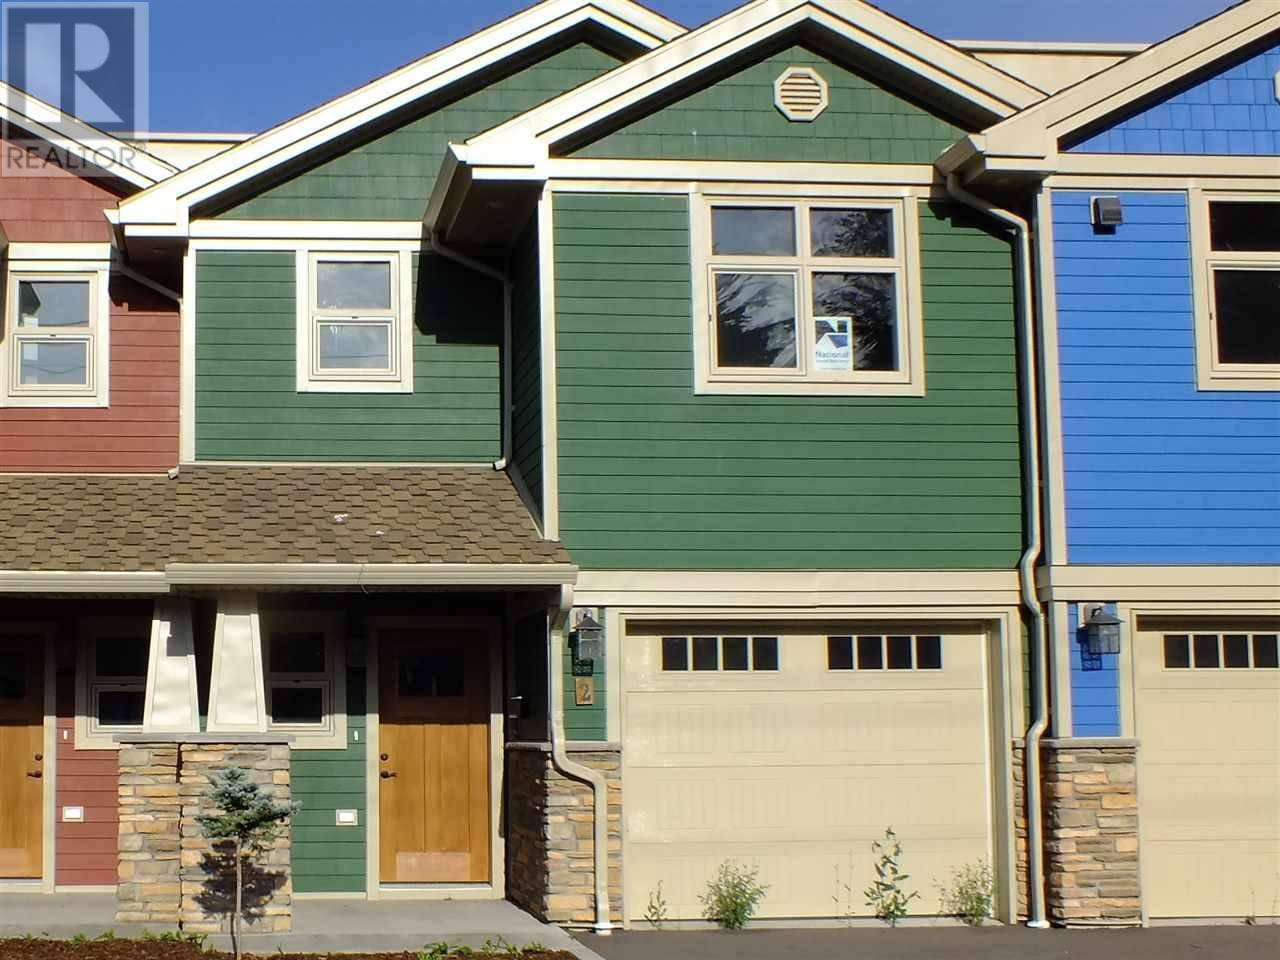 Townhouse for sale at 3320 Kenney St Unit 2 Terrace British Columbia - MLS: R2415950